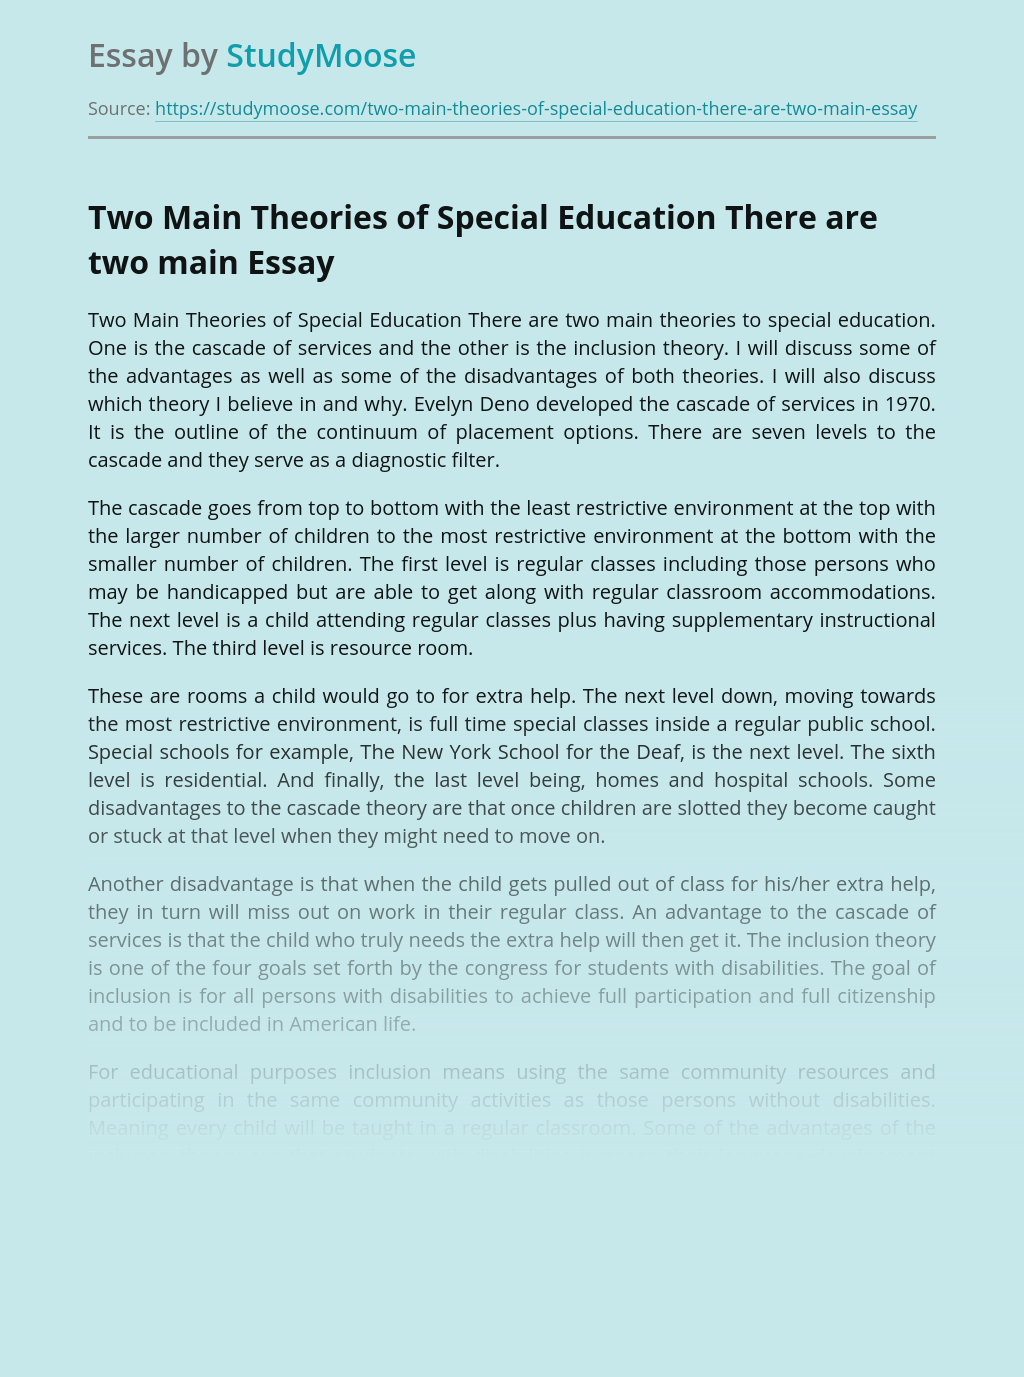 Two Main Theories of Special Education There are two main